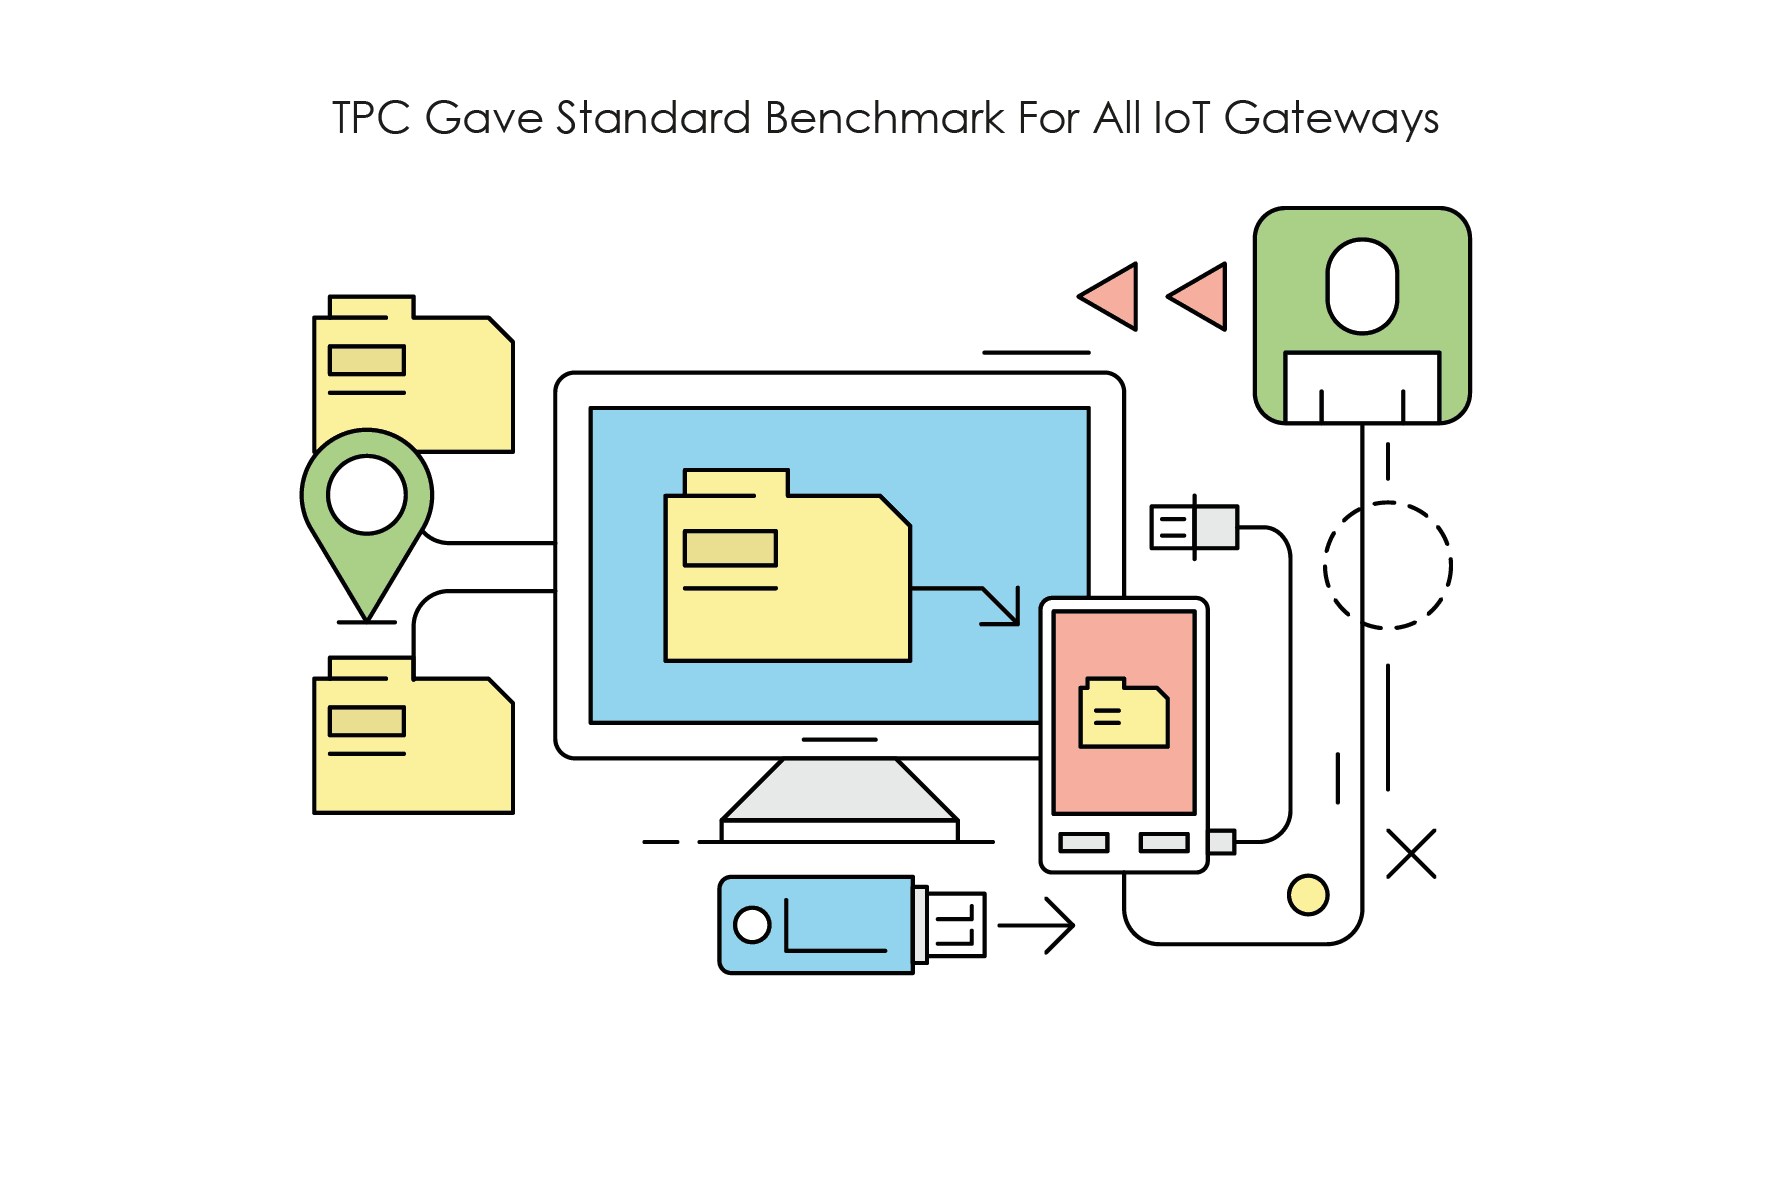 TPC Gave Standard Benchmark For All IoT Gateways